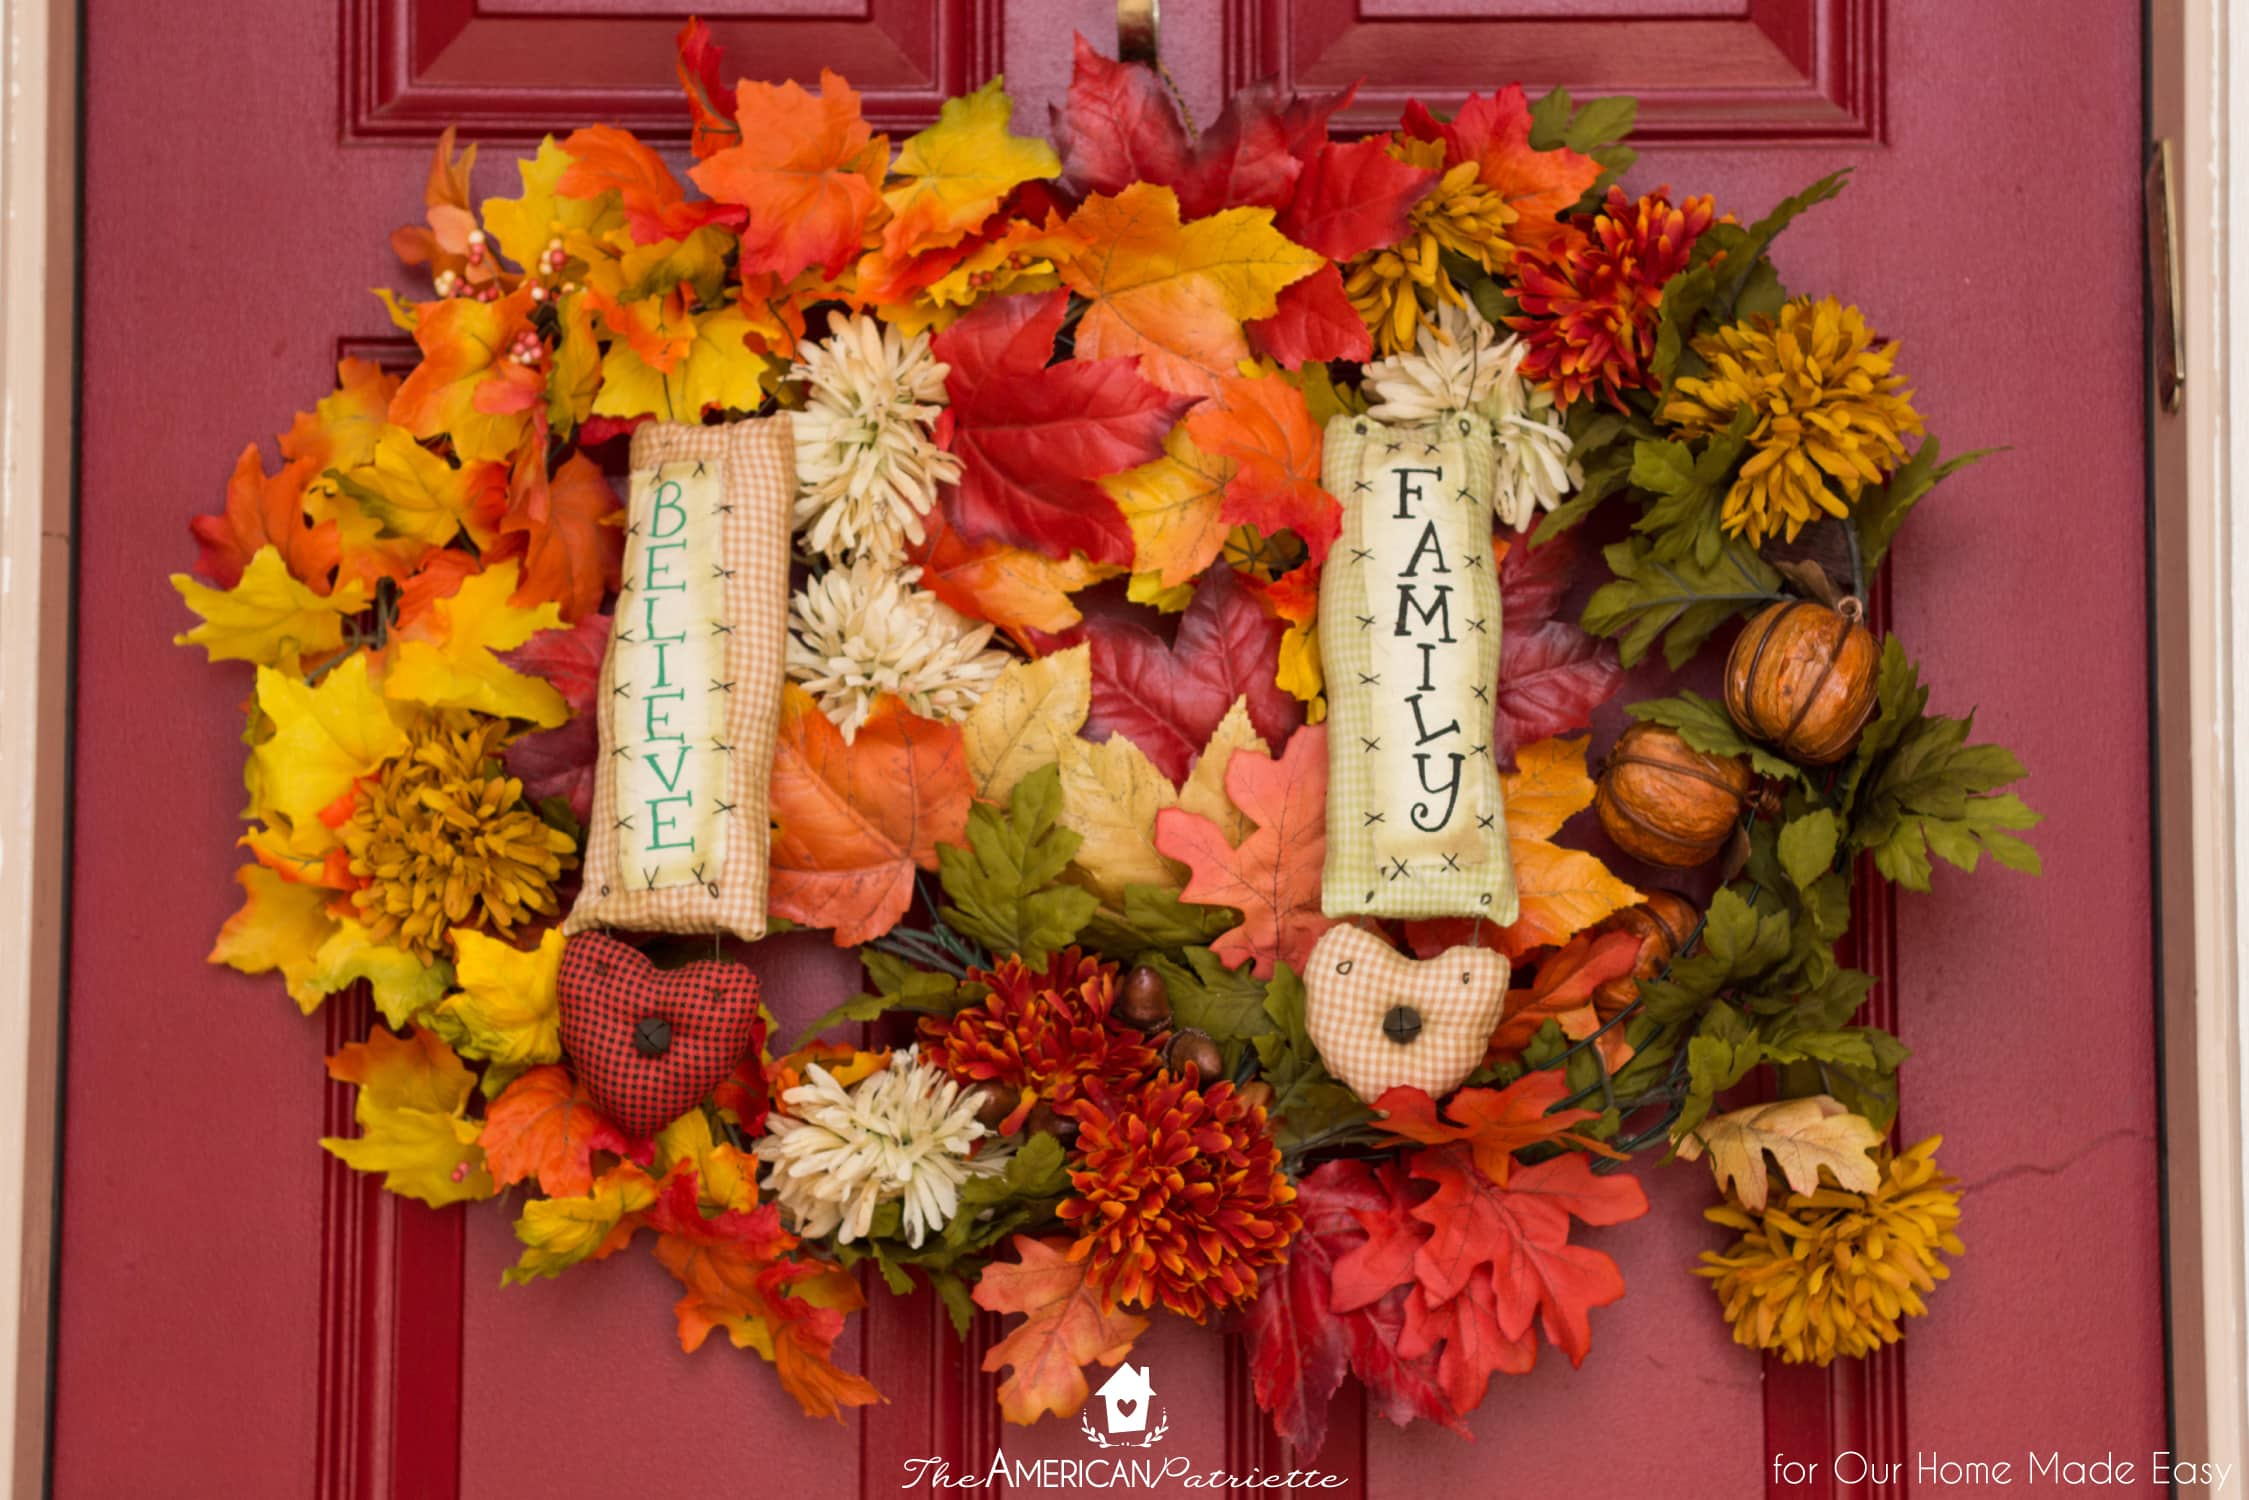 A colorful seasonal wreath is a great way to add color to your front porch